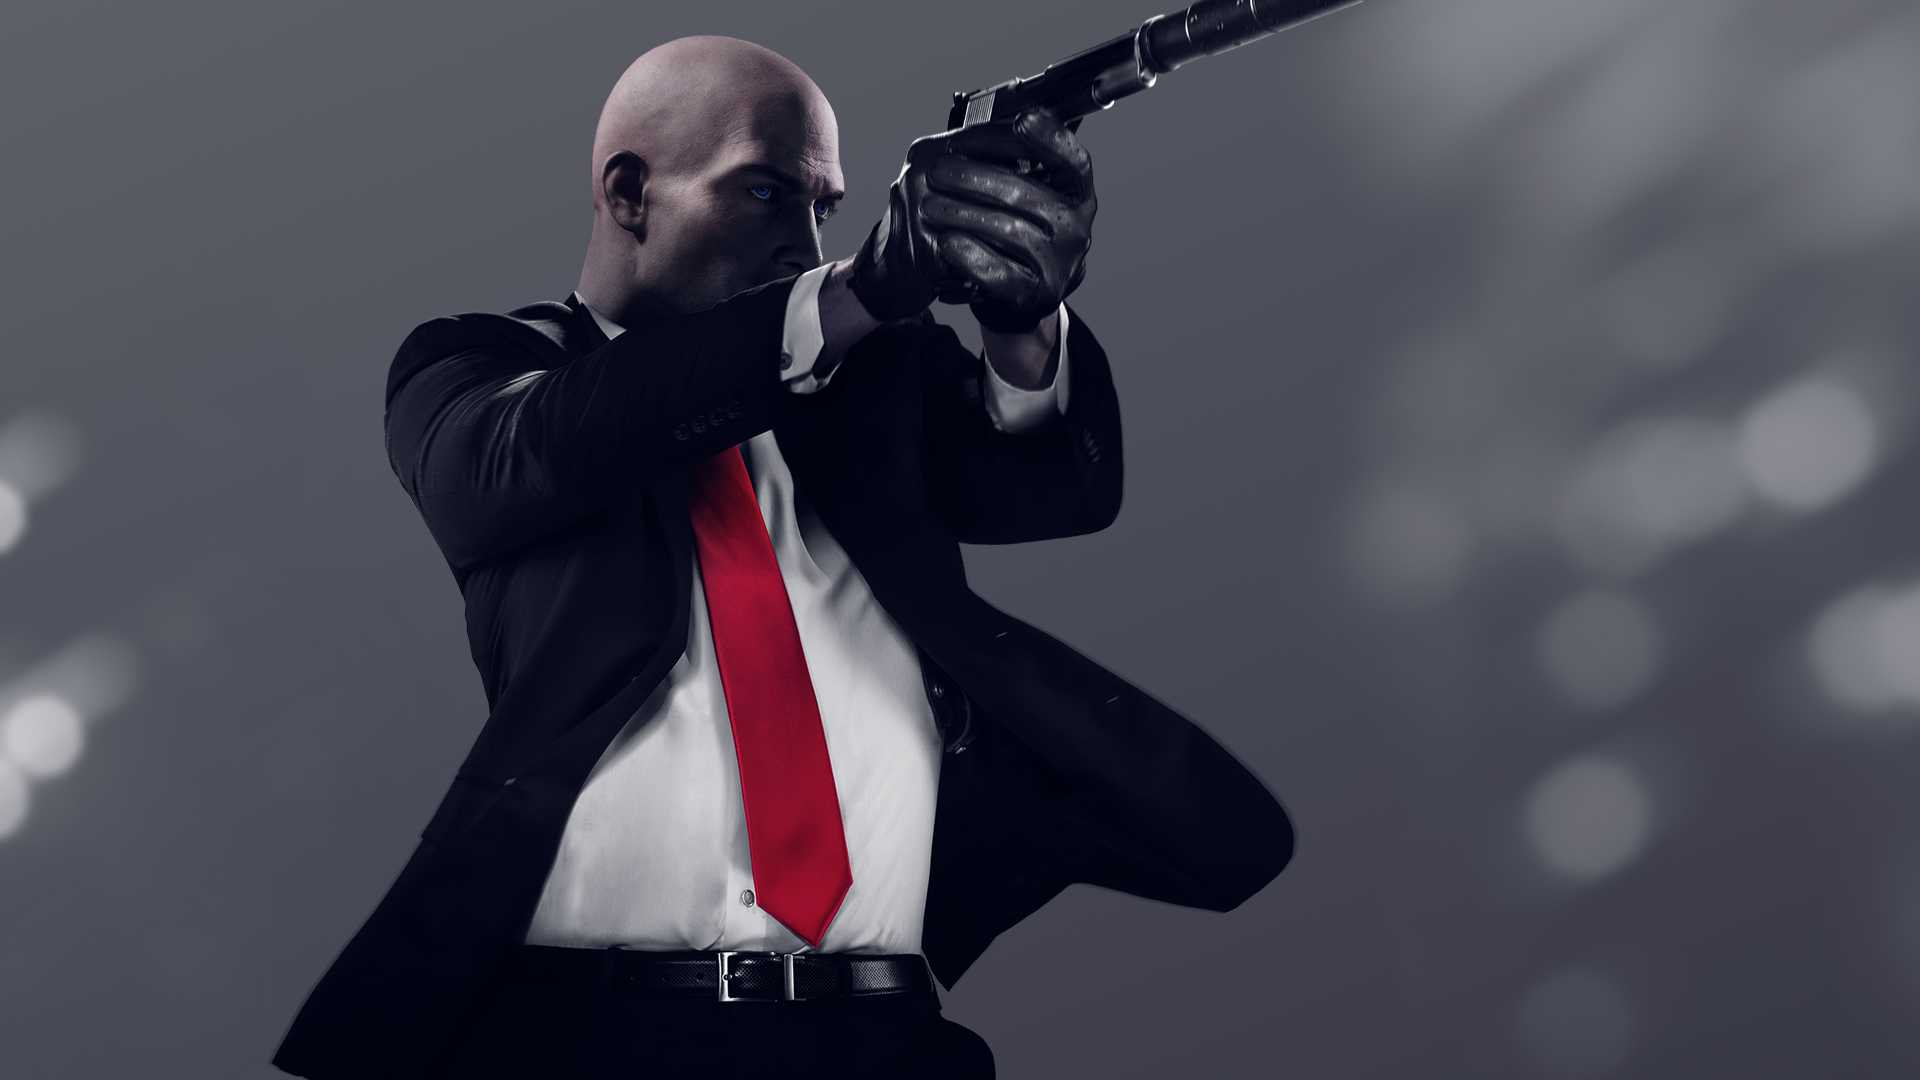 HITMAN 2 – Where to buy it? – HOW TO